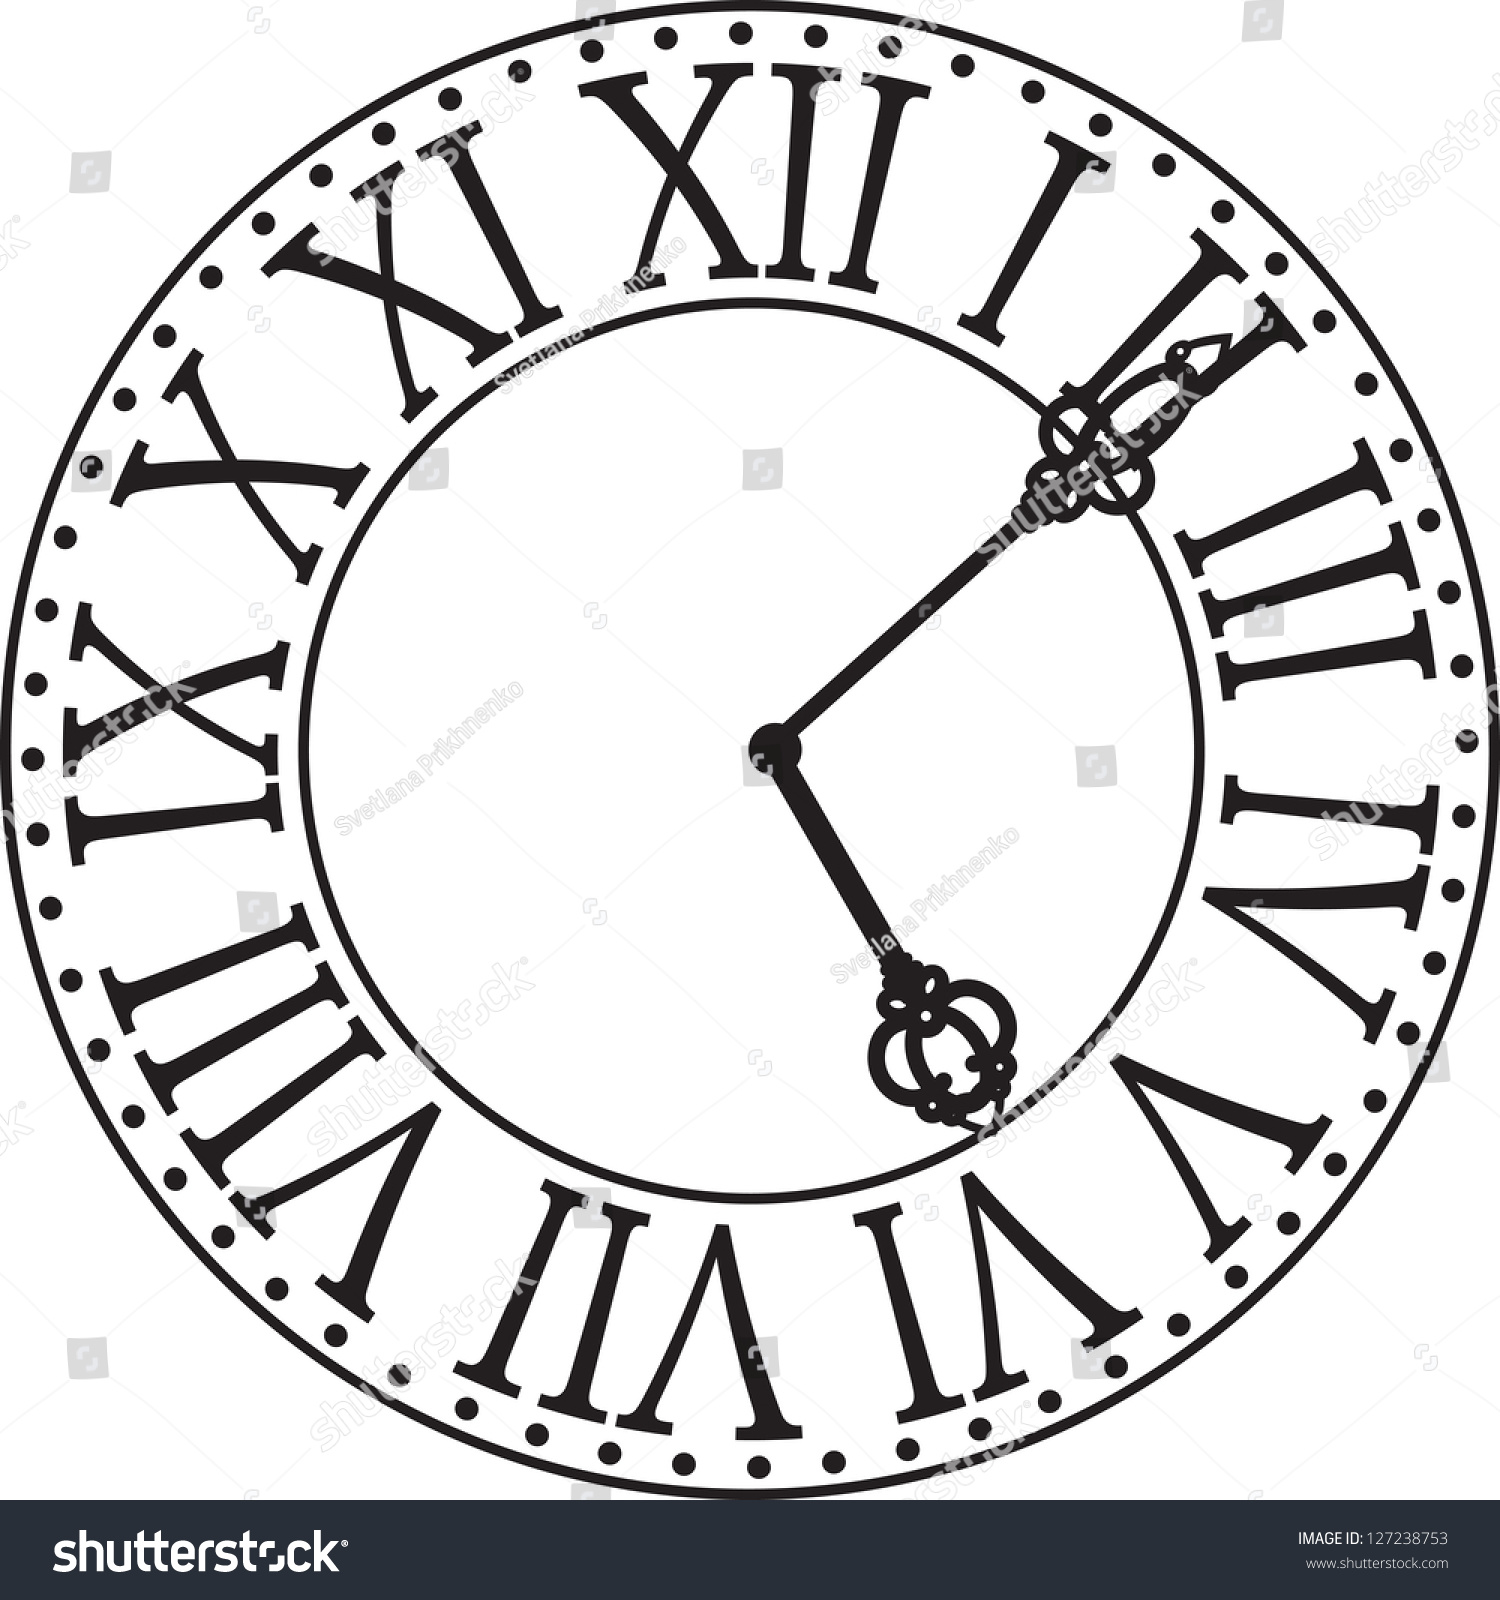 An Old Fashioned Antique Clock Stock Photo, Picture And Royalty ...